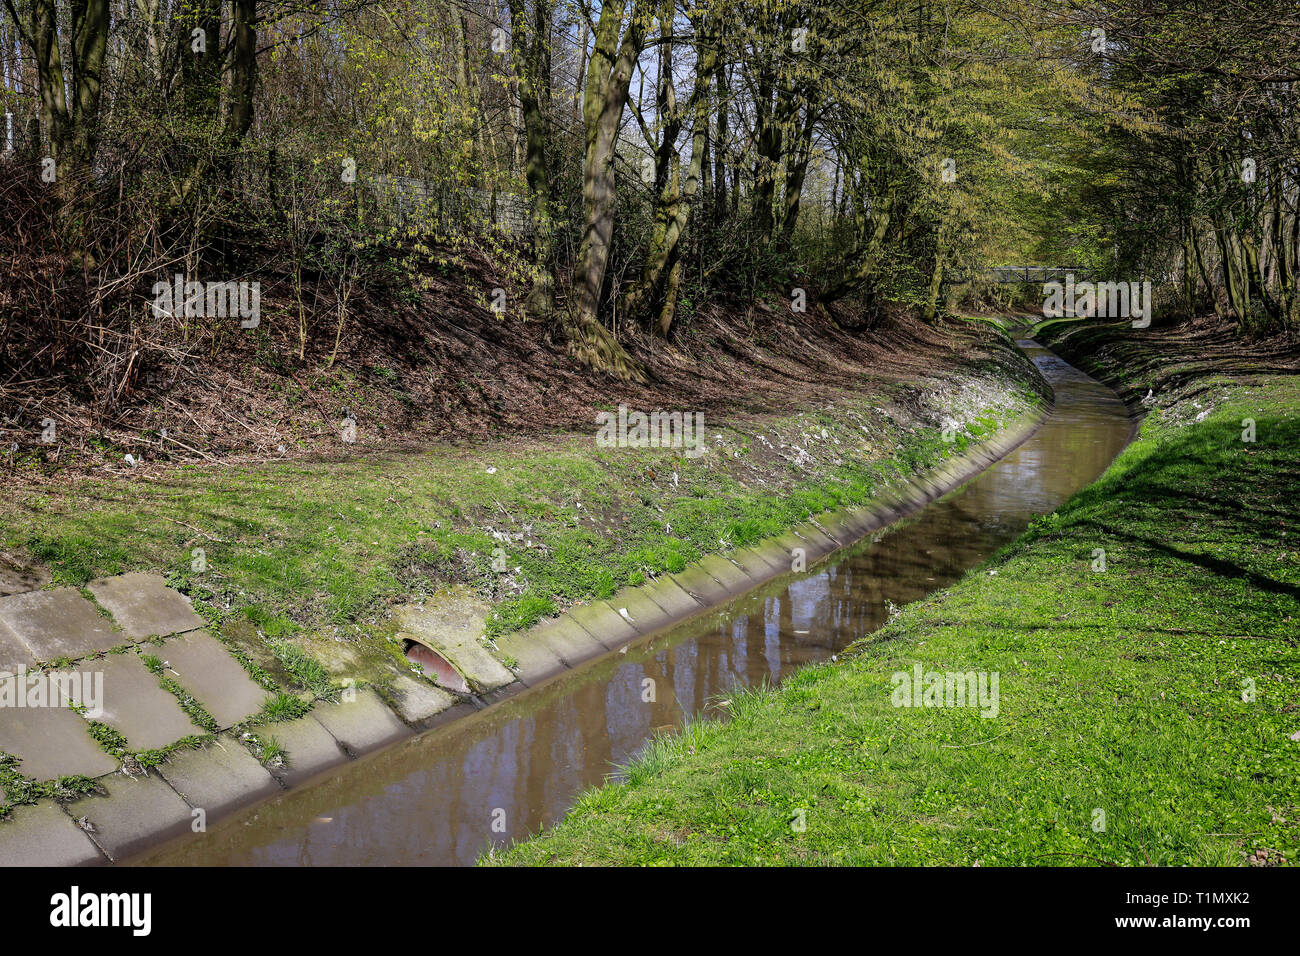 Essen, North Rhine-Westphalia, Germany - The Berne is a small river that rises in the city of Essen and flows into the Emscher. The canalised Berne is Stock Photo